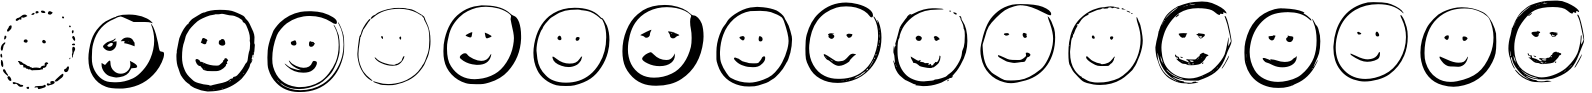 BM Graphics - Smilies